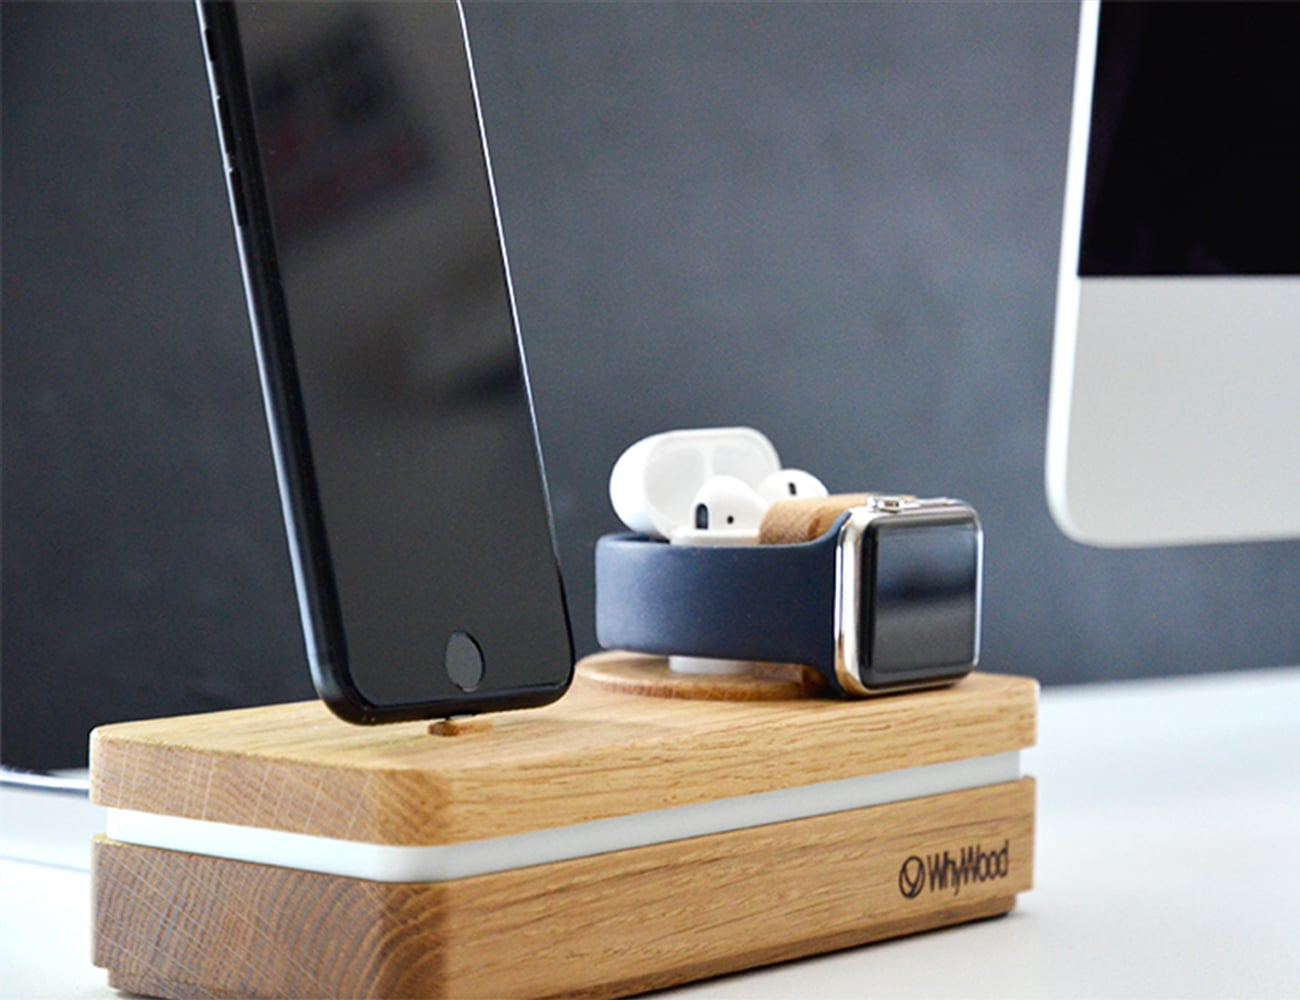 dockit docking station for apple devices gadget flow. Black Bedroom Furniture Sets. Home Design Ideas